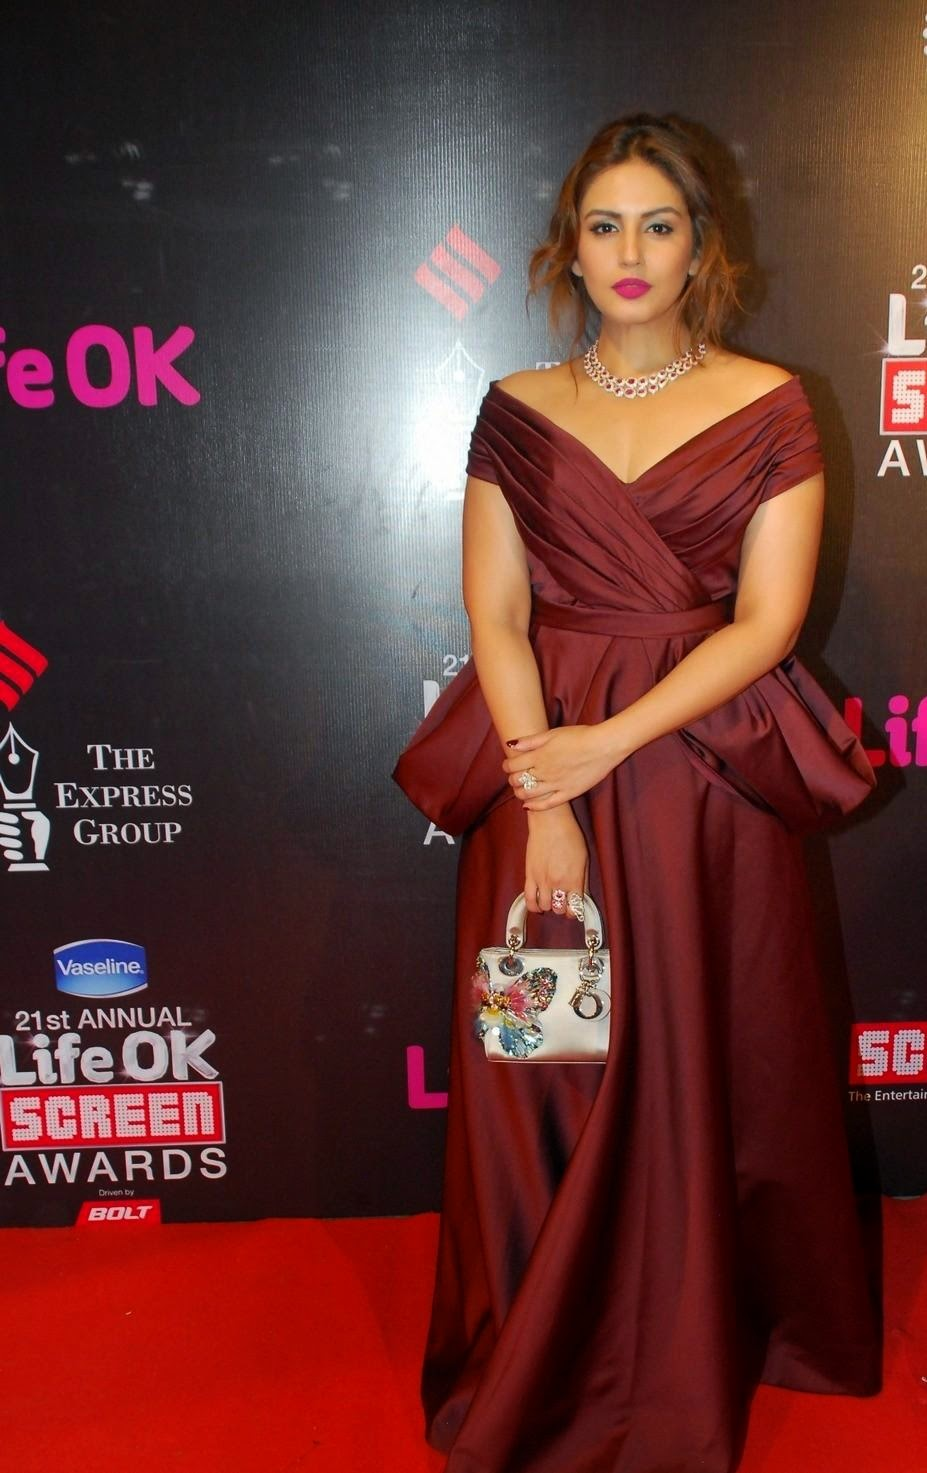 Bollywood celebras at 21st Life ok screen awards